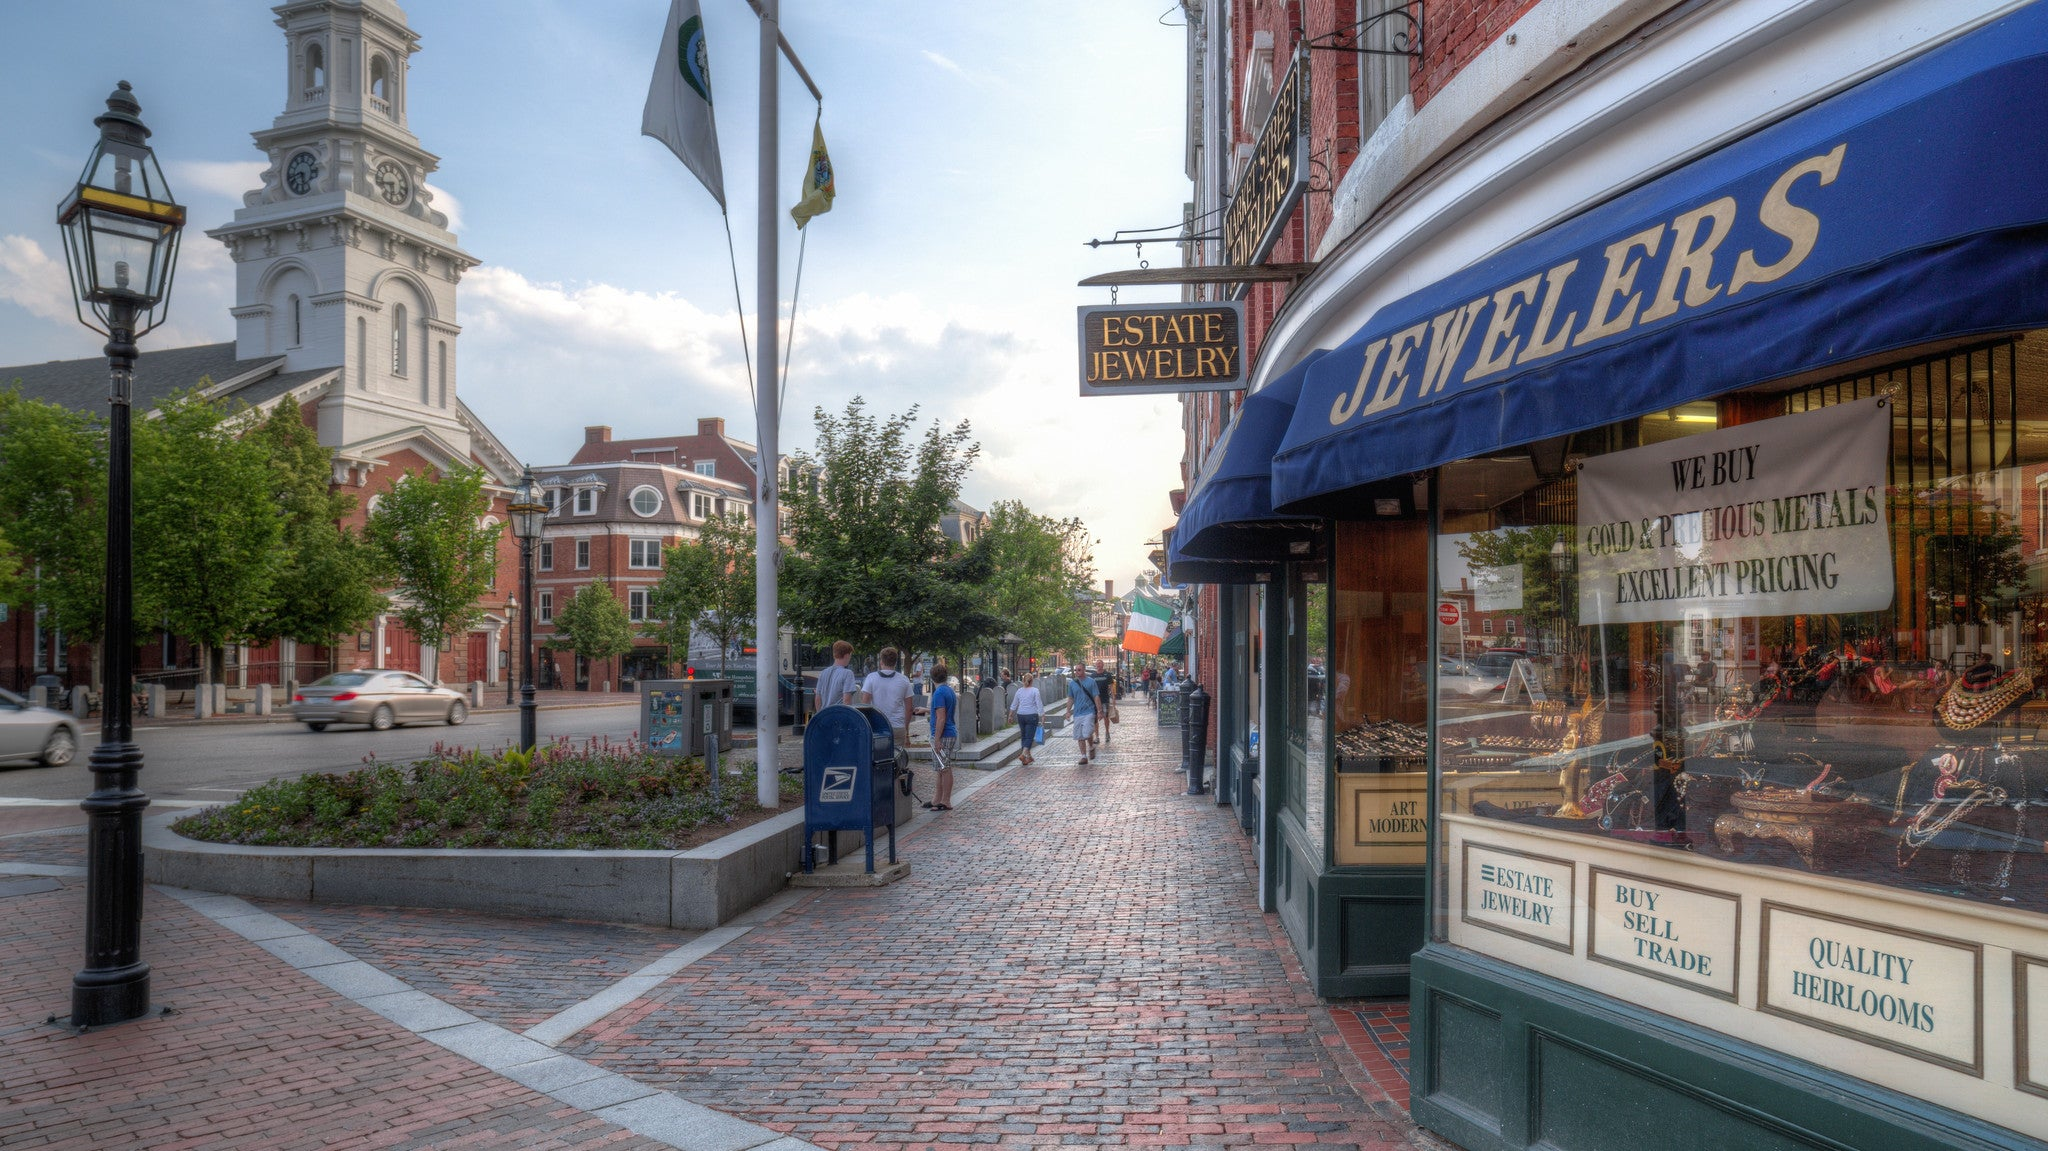 Portsmouth NH Market Square Jewelers